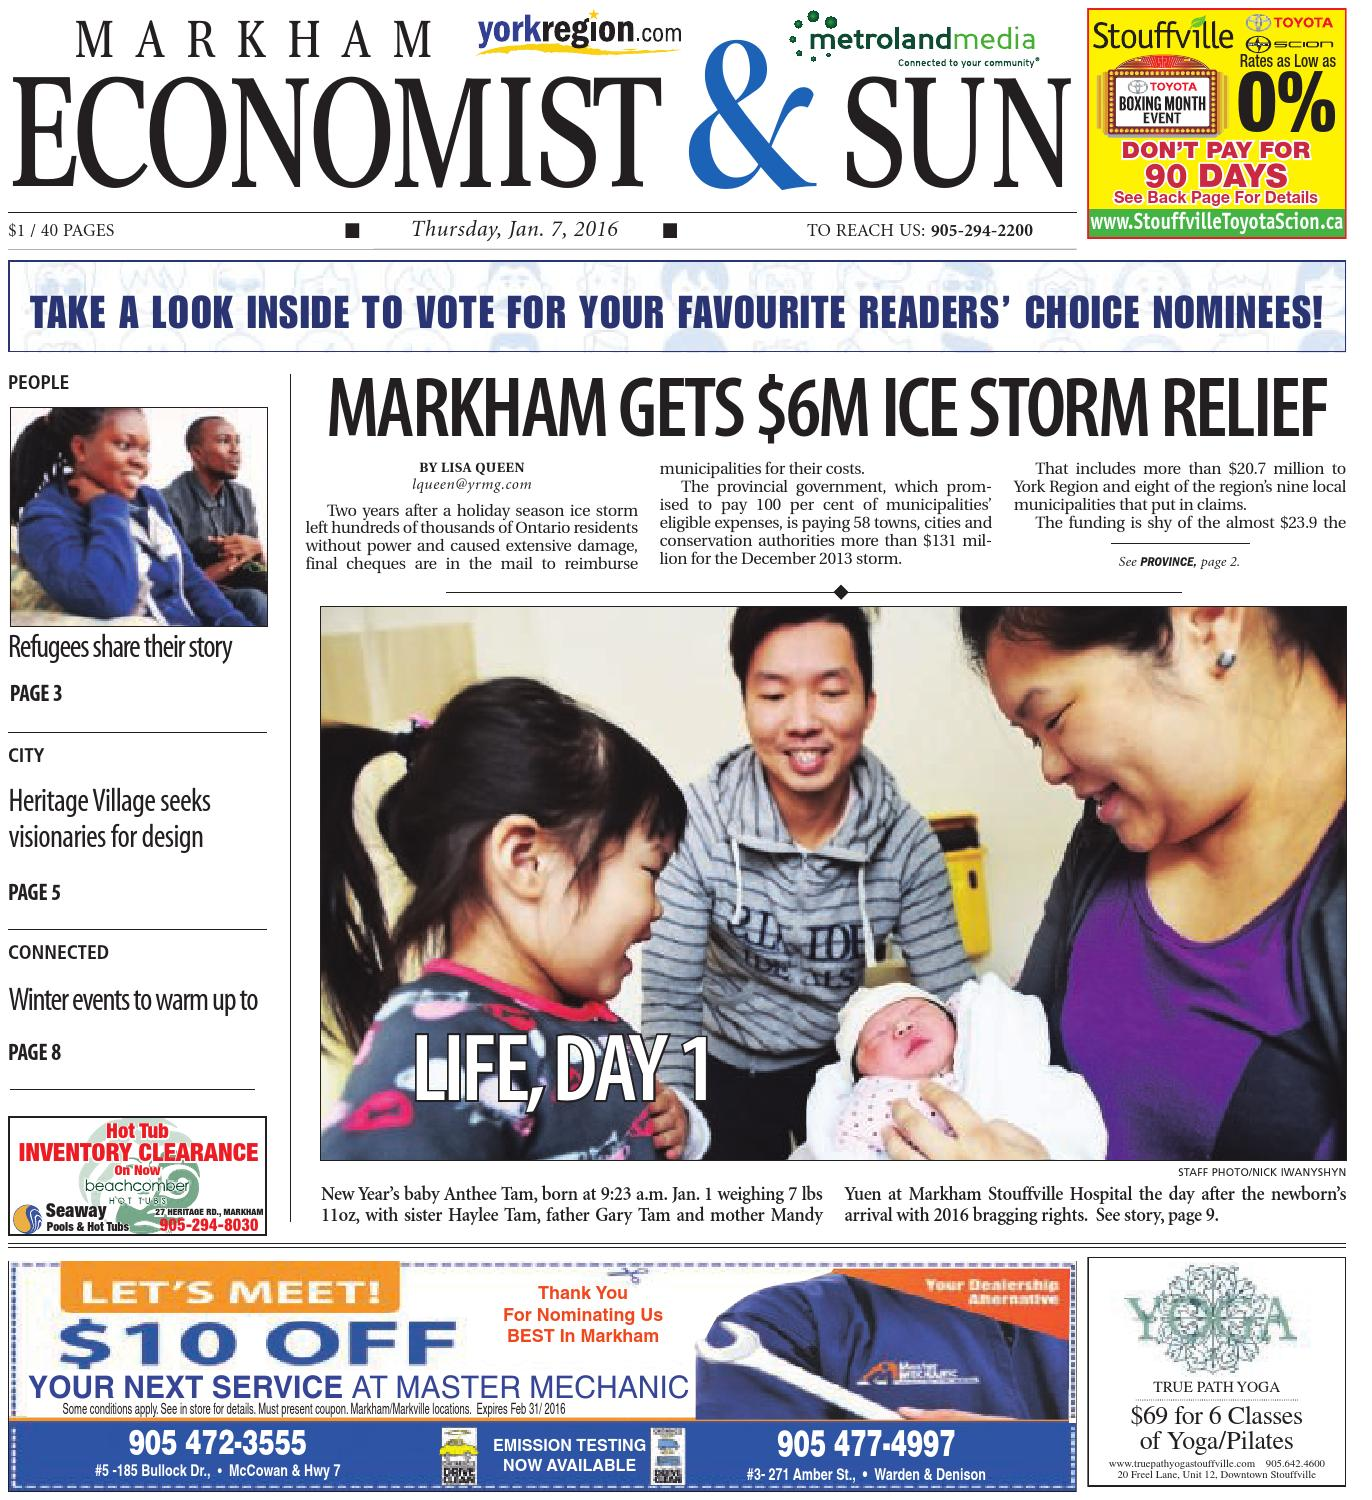 markham economist Markham economist and sun freight traffic could double if mississauga-milton initiative gains traction the prospect of twice as many freight trains rolling through south york region has local taxpayer groups reaching out to all levels of government to put the brakes on.